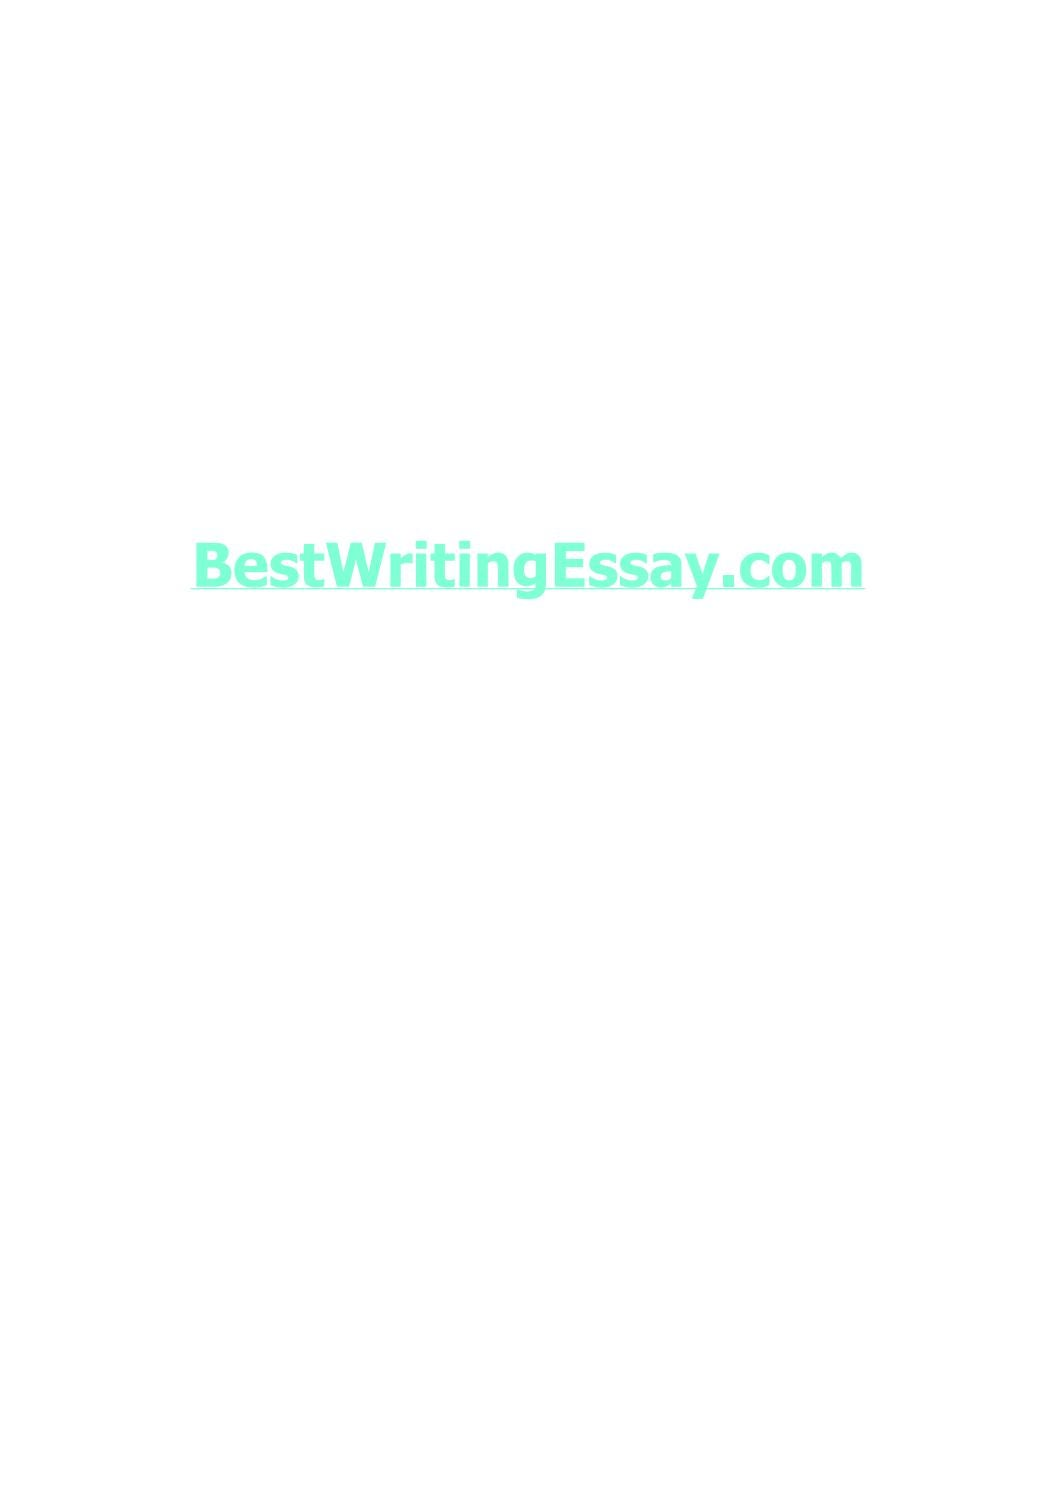 does university of north texas require an essay